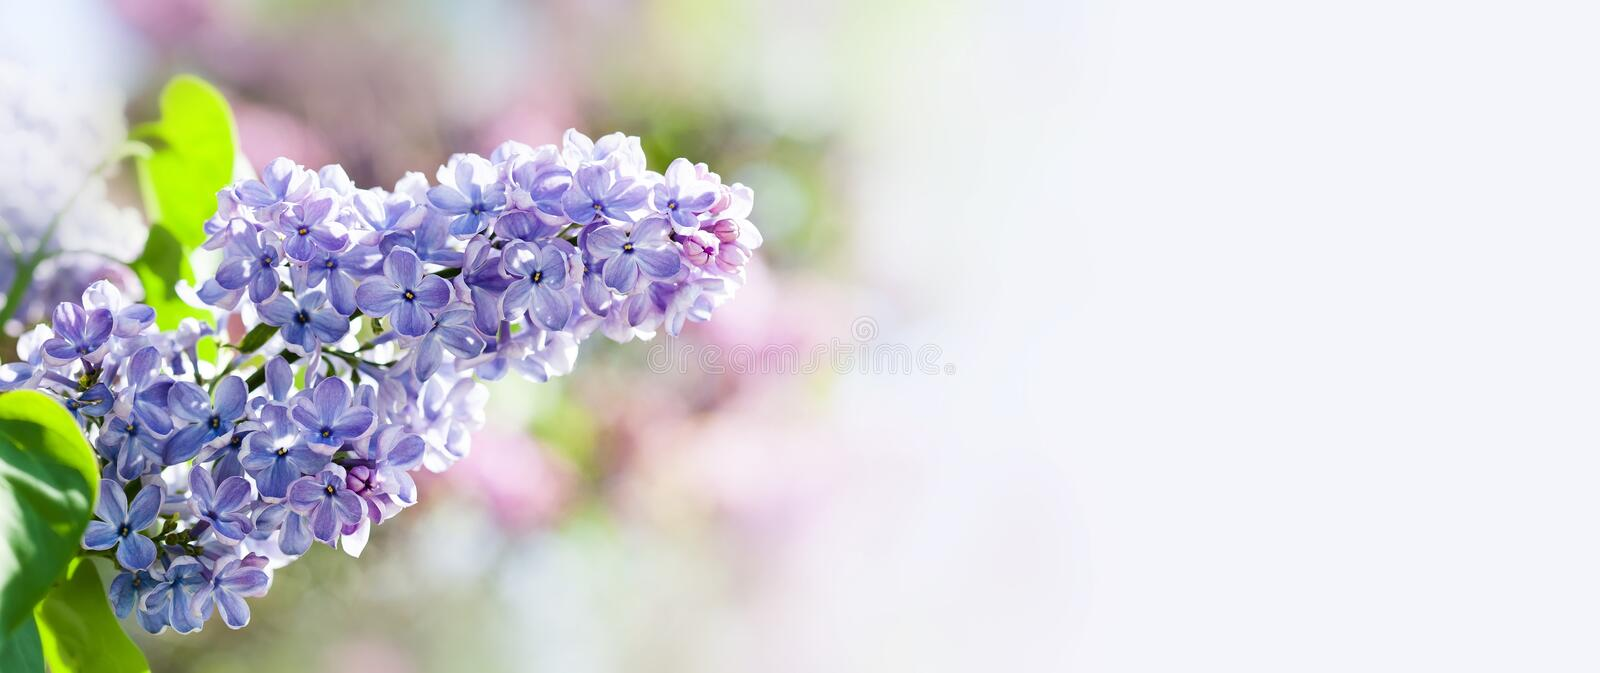 Beautiful springtime floral background with bunch of violet purple flowers. Blossoming Syringa vulgaris lilacs bush. Soft focus photo. copy space stock images